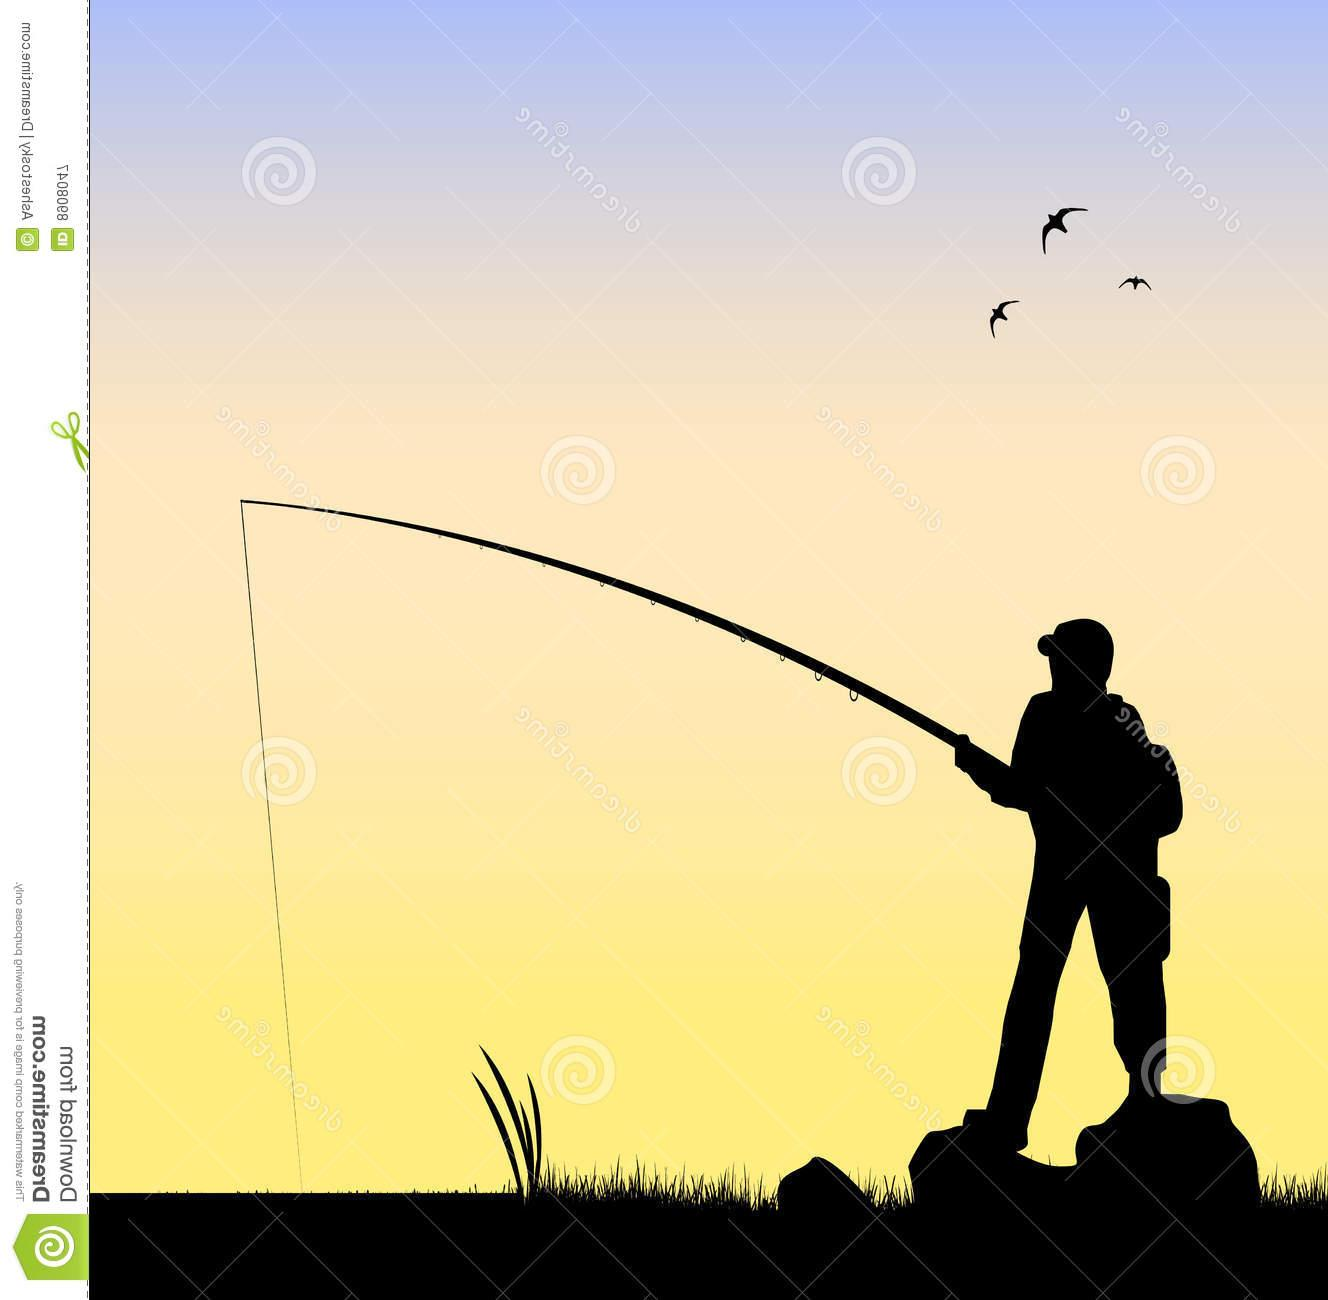 1328x1300 Best Free Fisherman Fishing River Vector Design